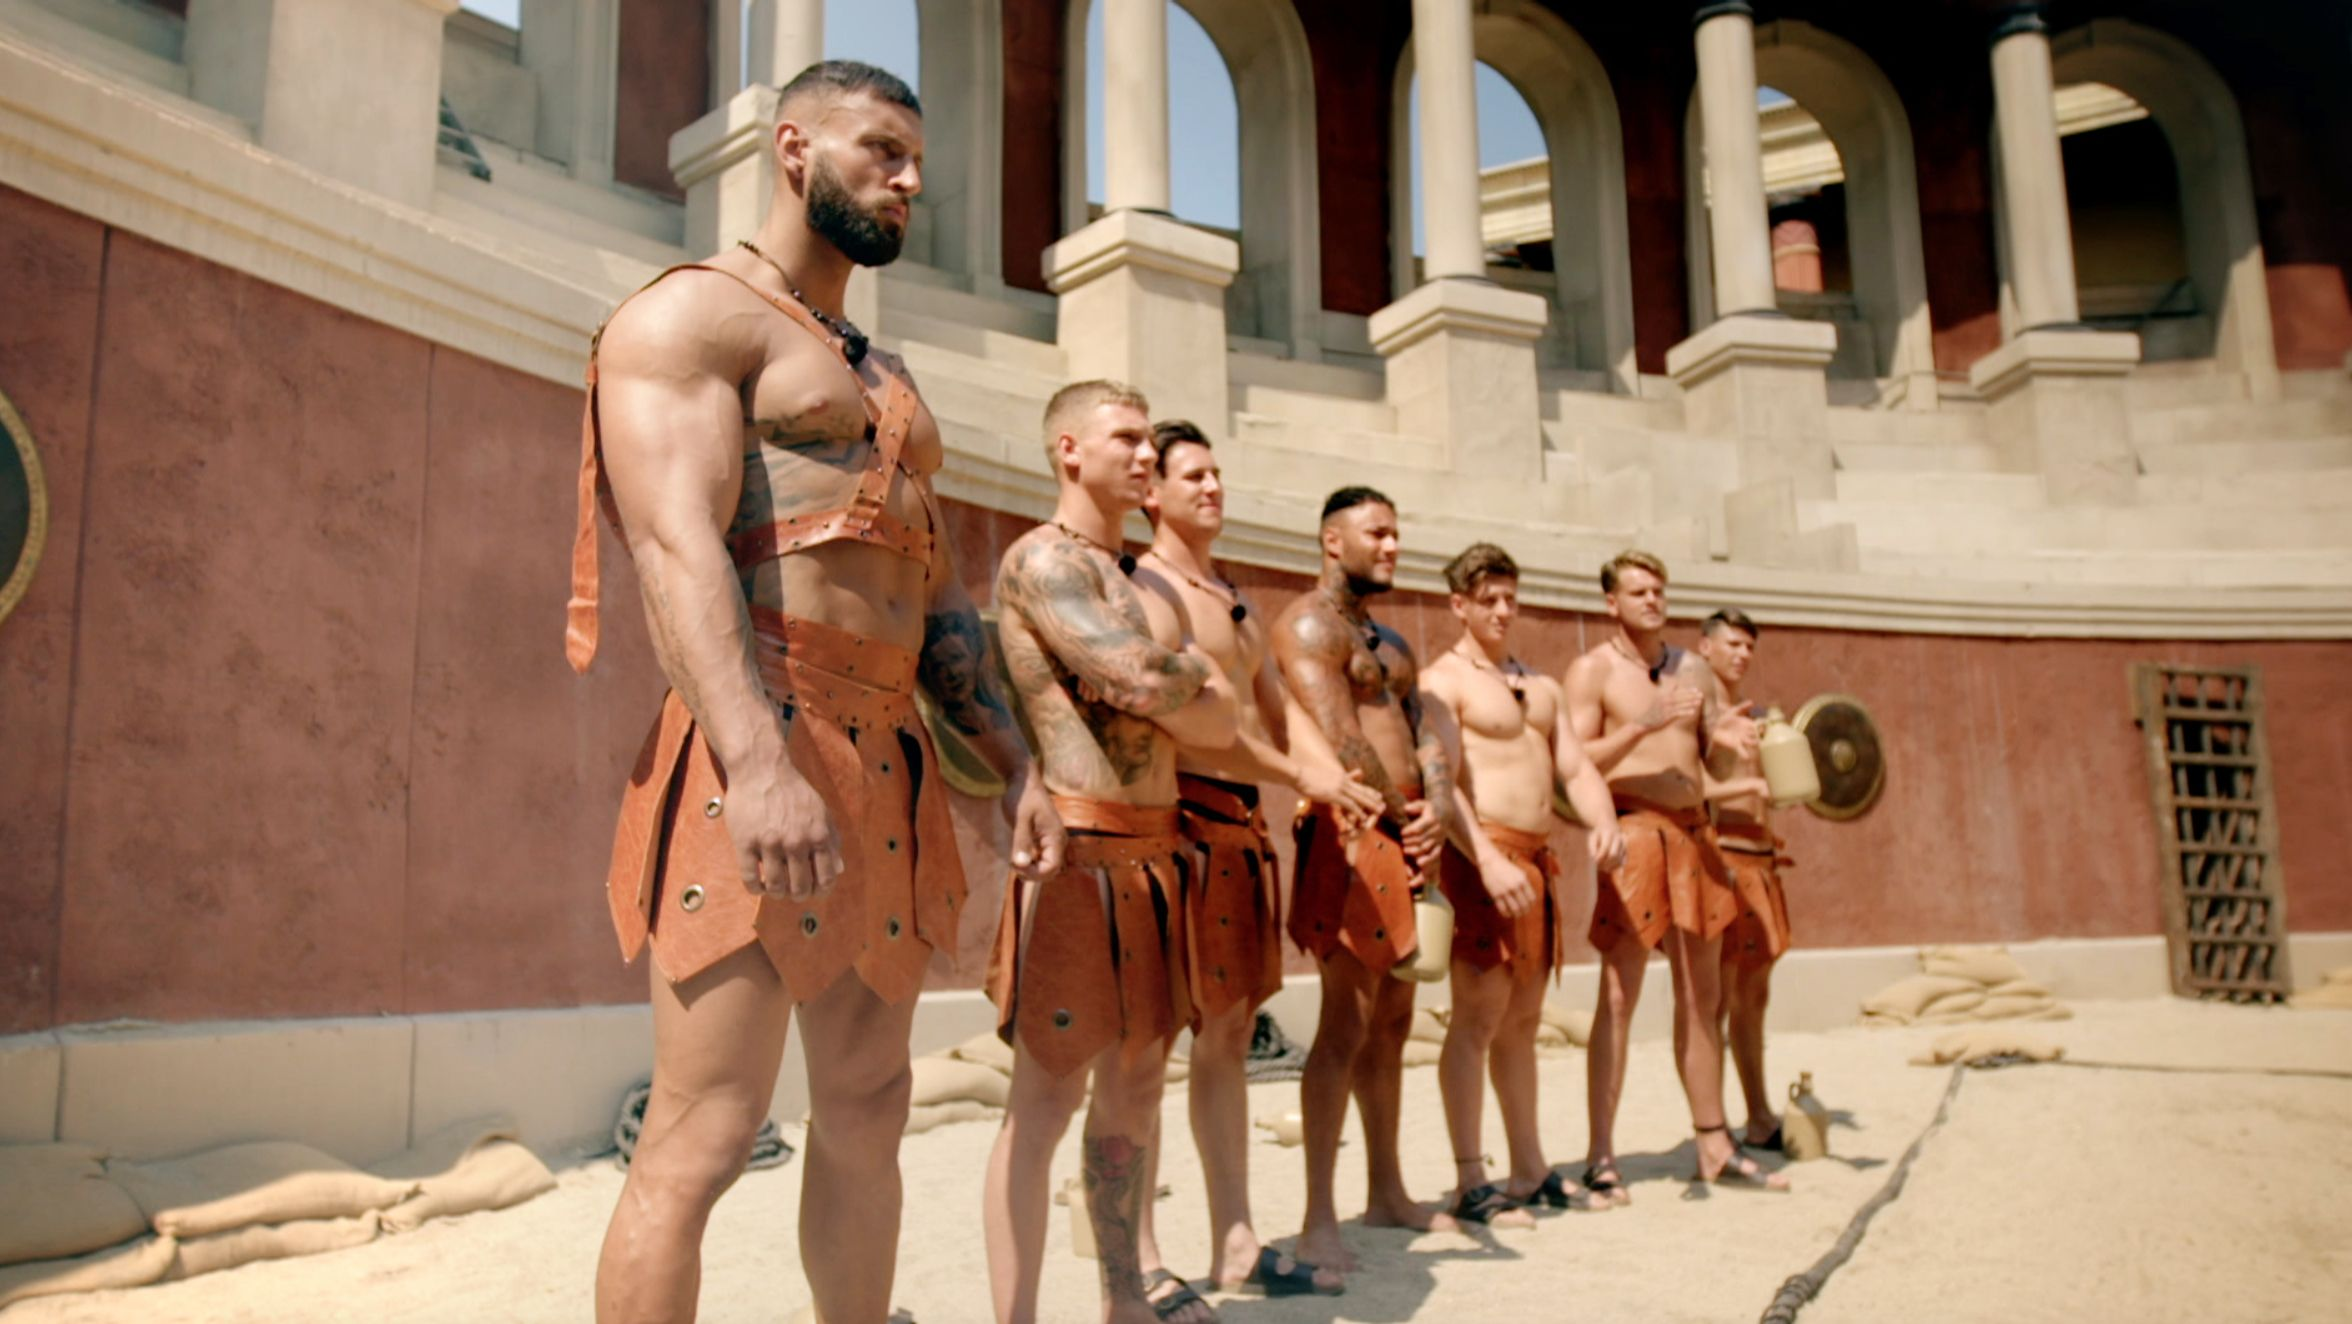 Gladiator man naked